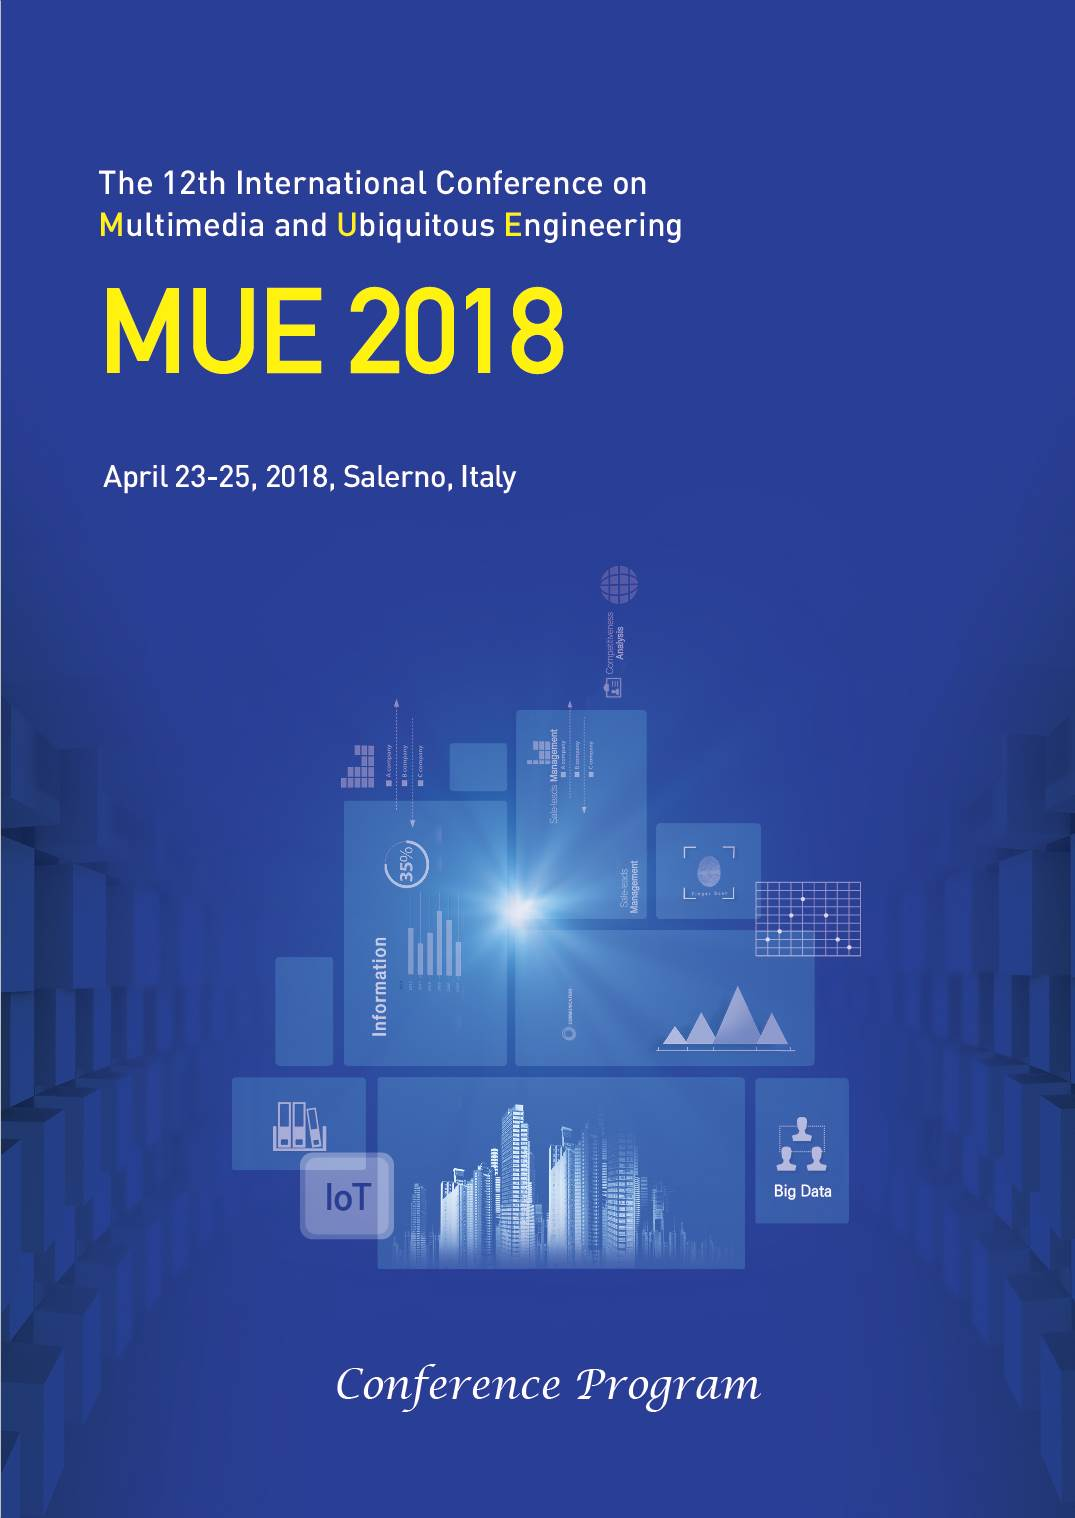 The 12th International Conference on Multimedia and Ubiquitous